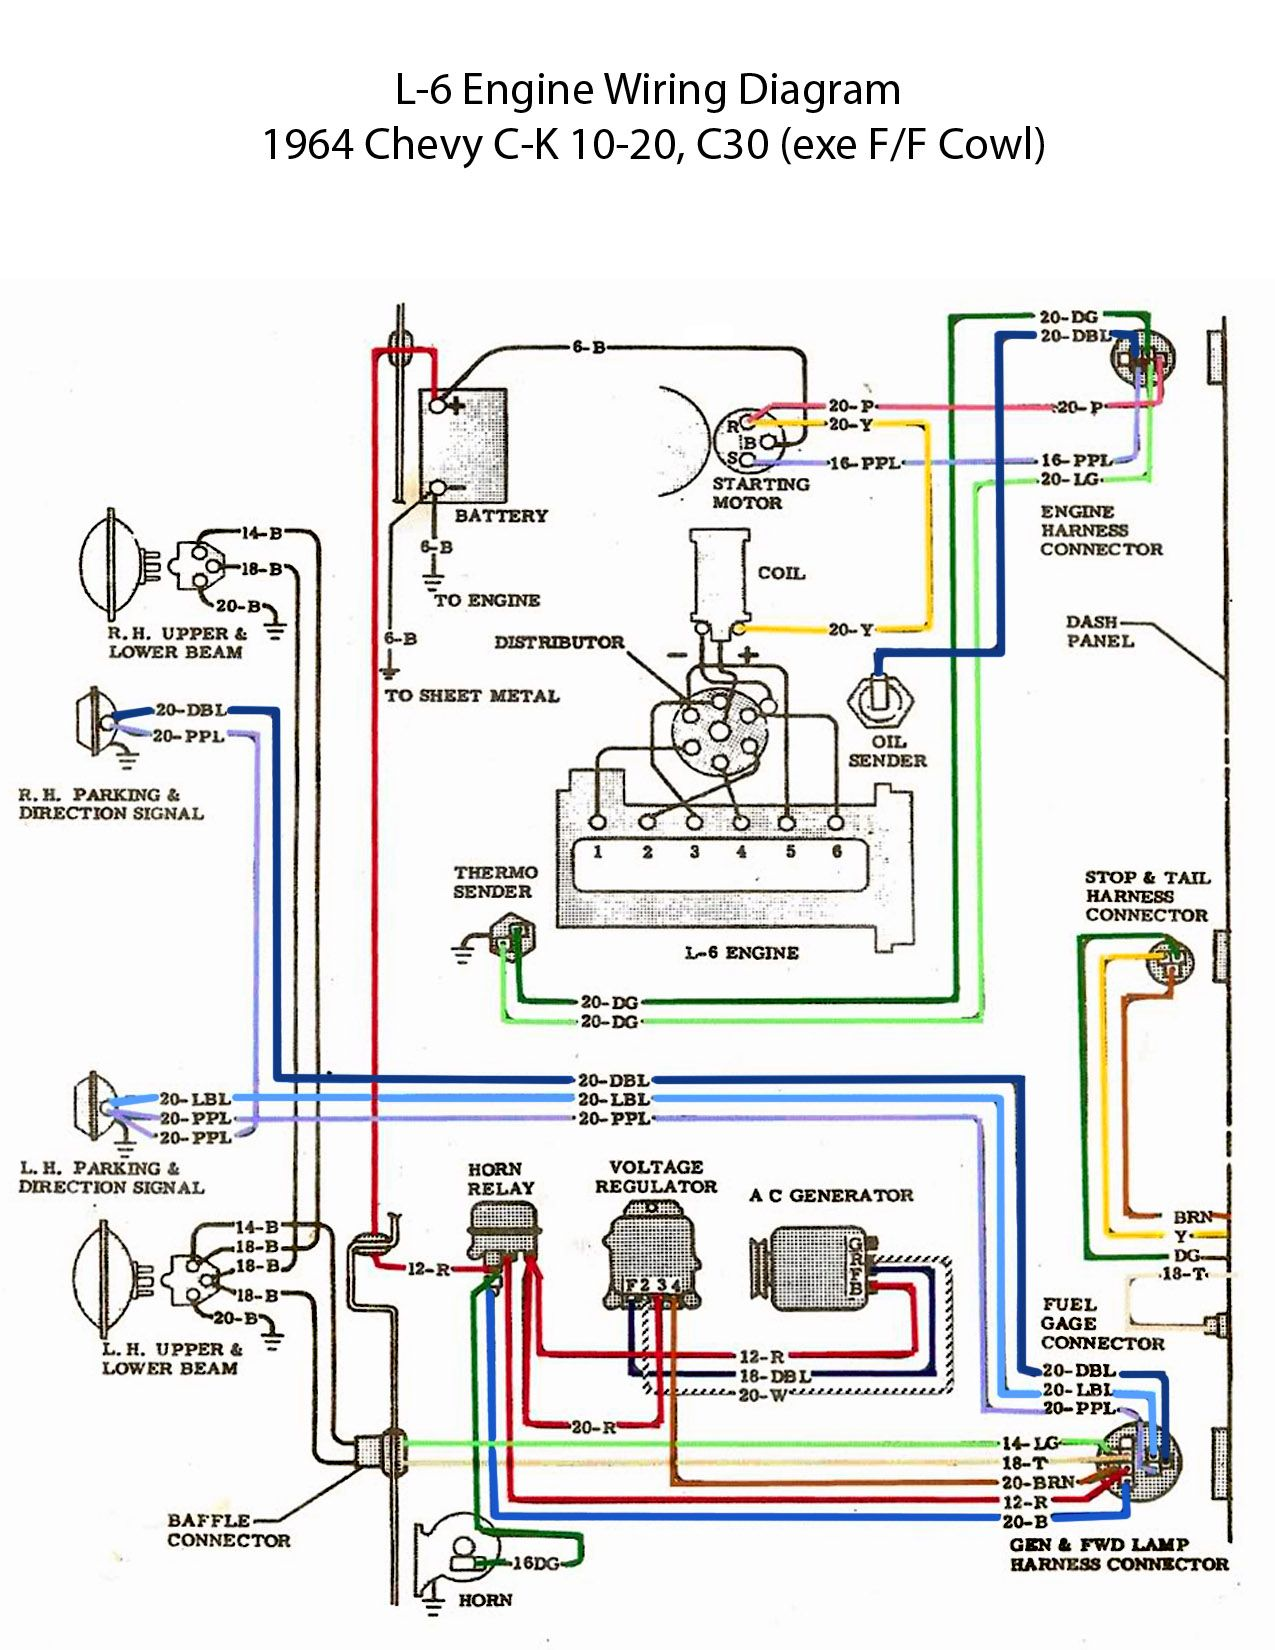 electric l 6 engine wiring diagram 60s chevy c10 wiring rh pinterest com 1984 Chevy P-32 Wiring Schematic 89 Chevy C1500 Ignition Wiring Diagram